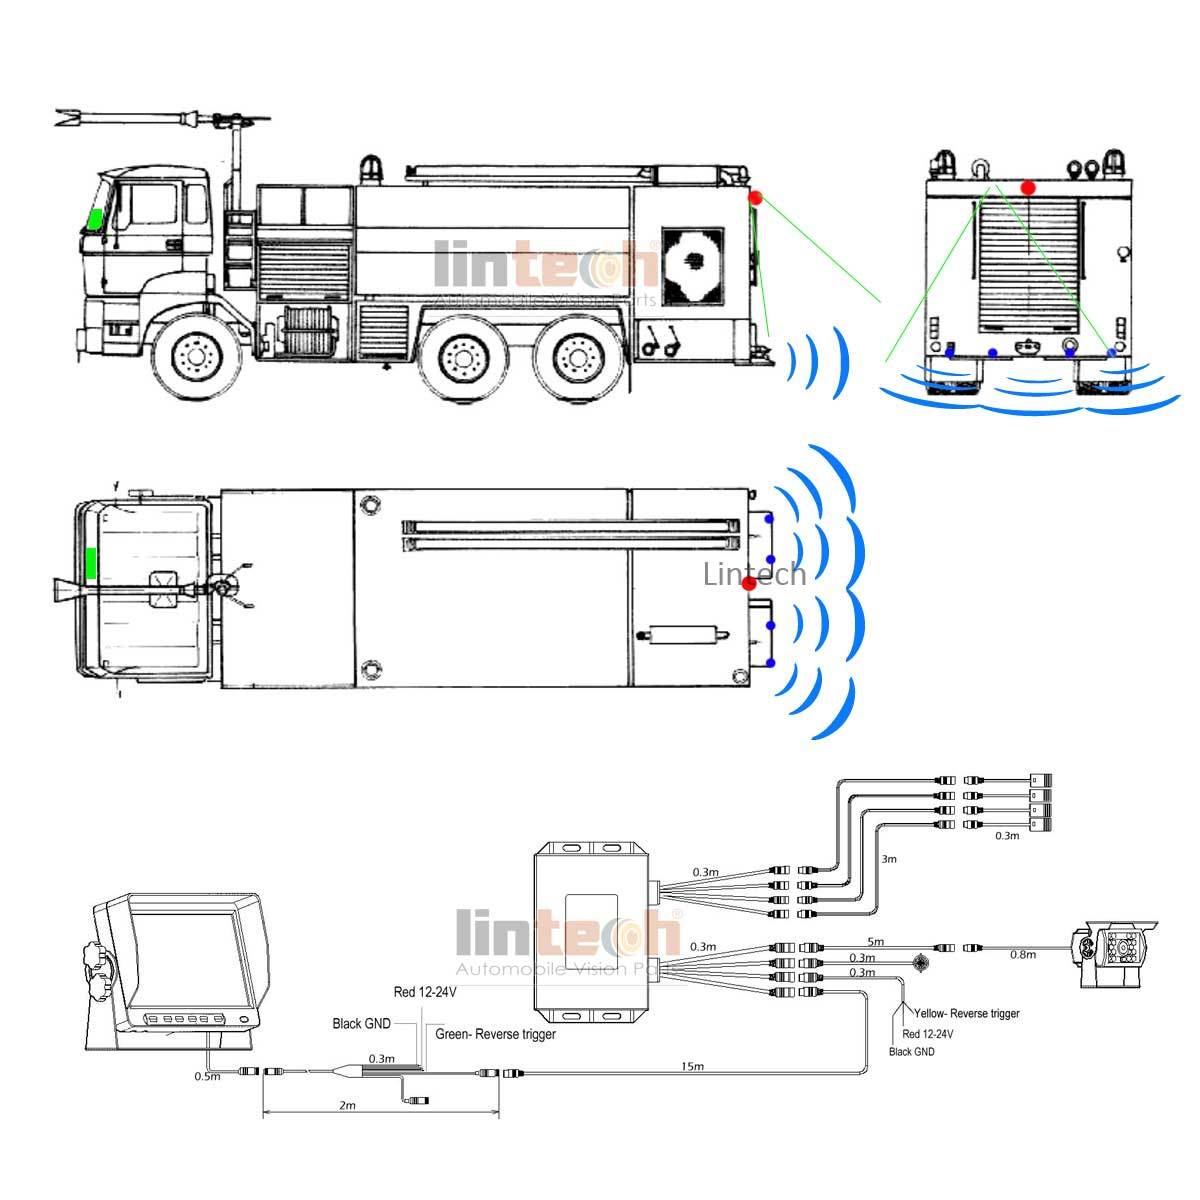 Fire-truck-parking-sensor-Camera-system-wiring-diagram